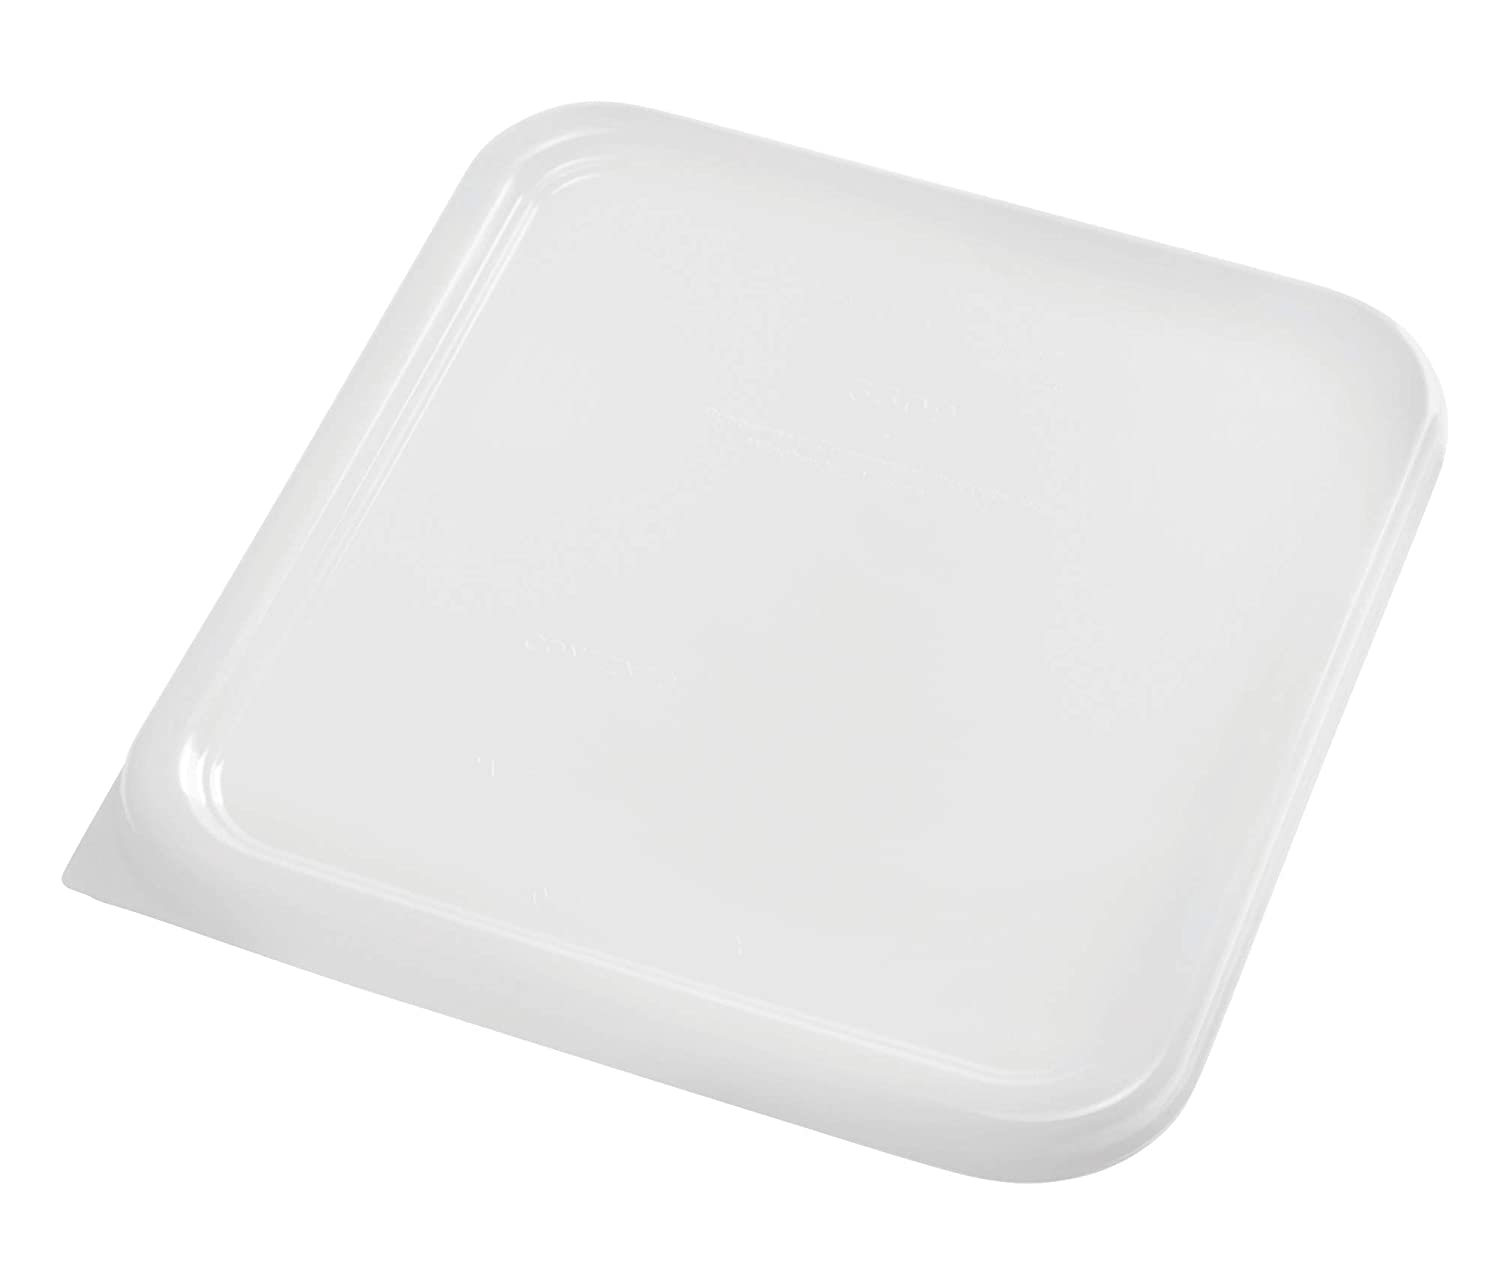 Rubbermaid Commercial Products Dur-X Lid, White, FG650900WHT, (Pack of 12)